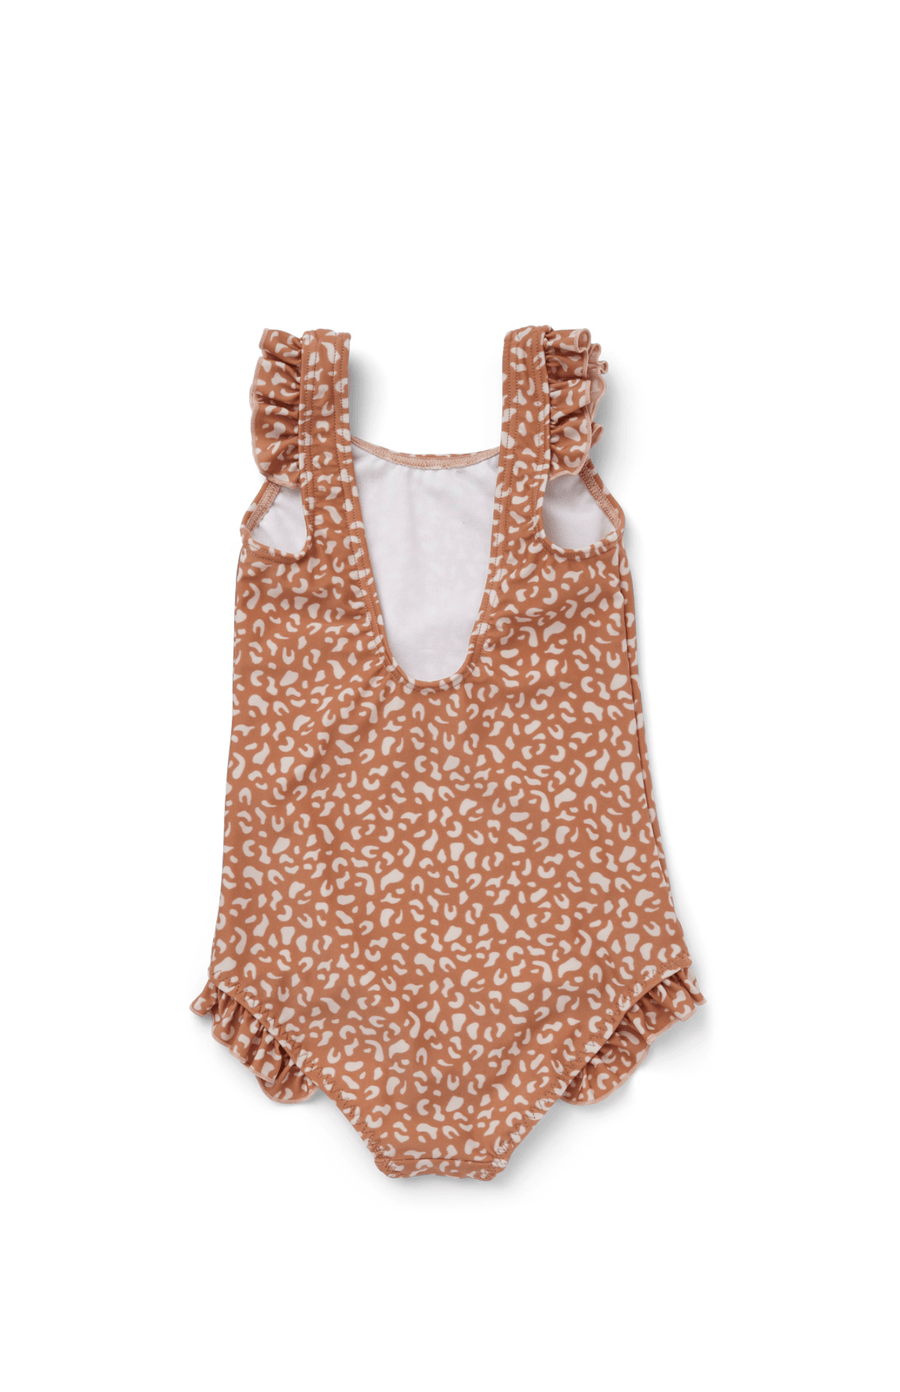 Liewood Tanna Swimsuit - Mini Leo Tuscany Rose